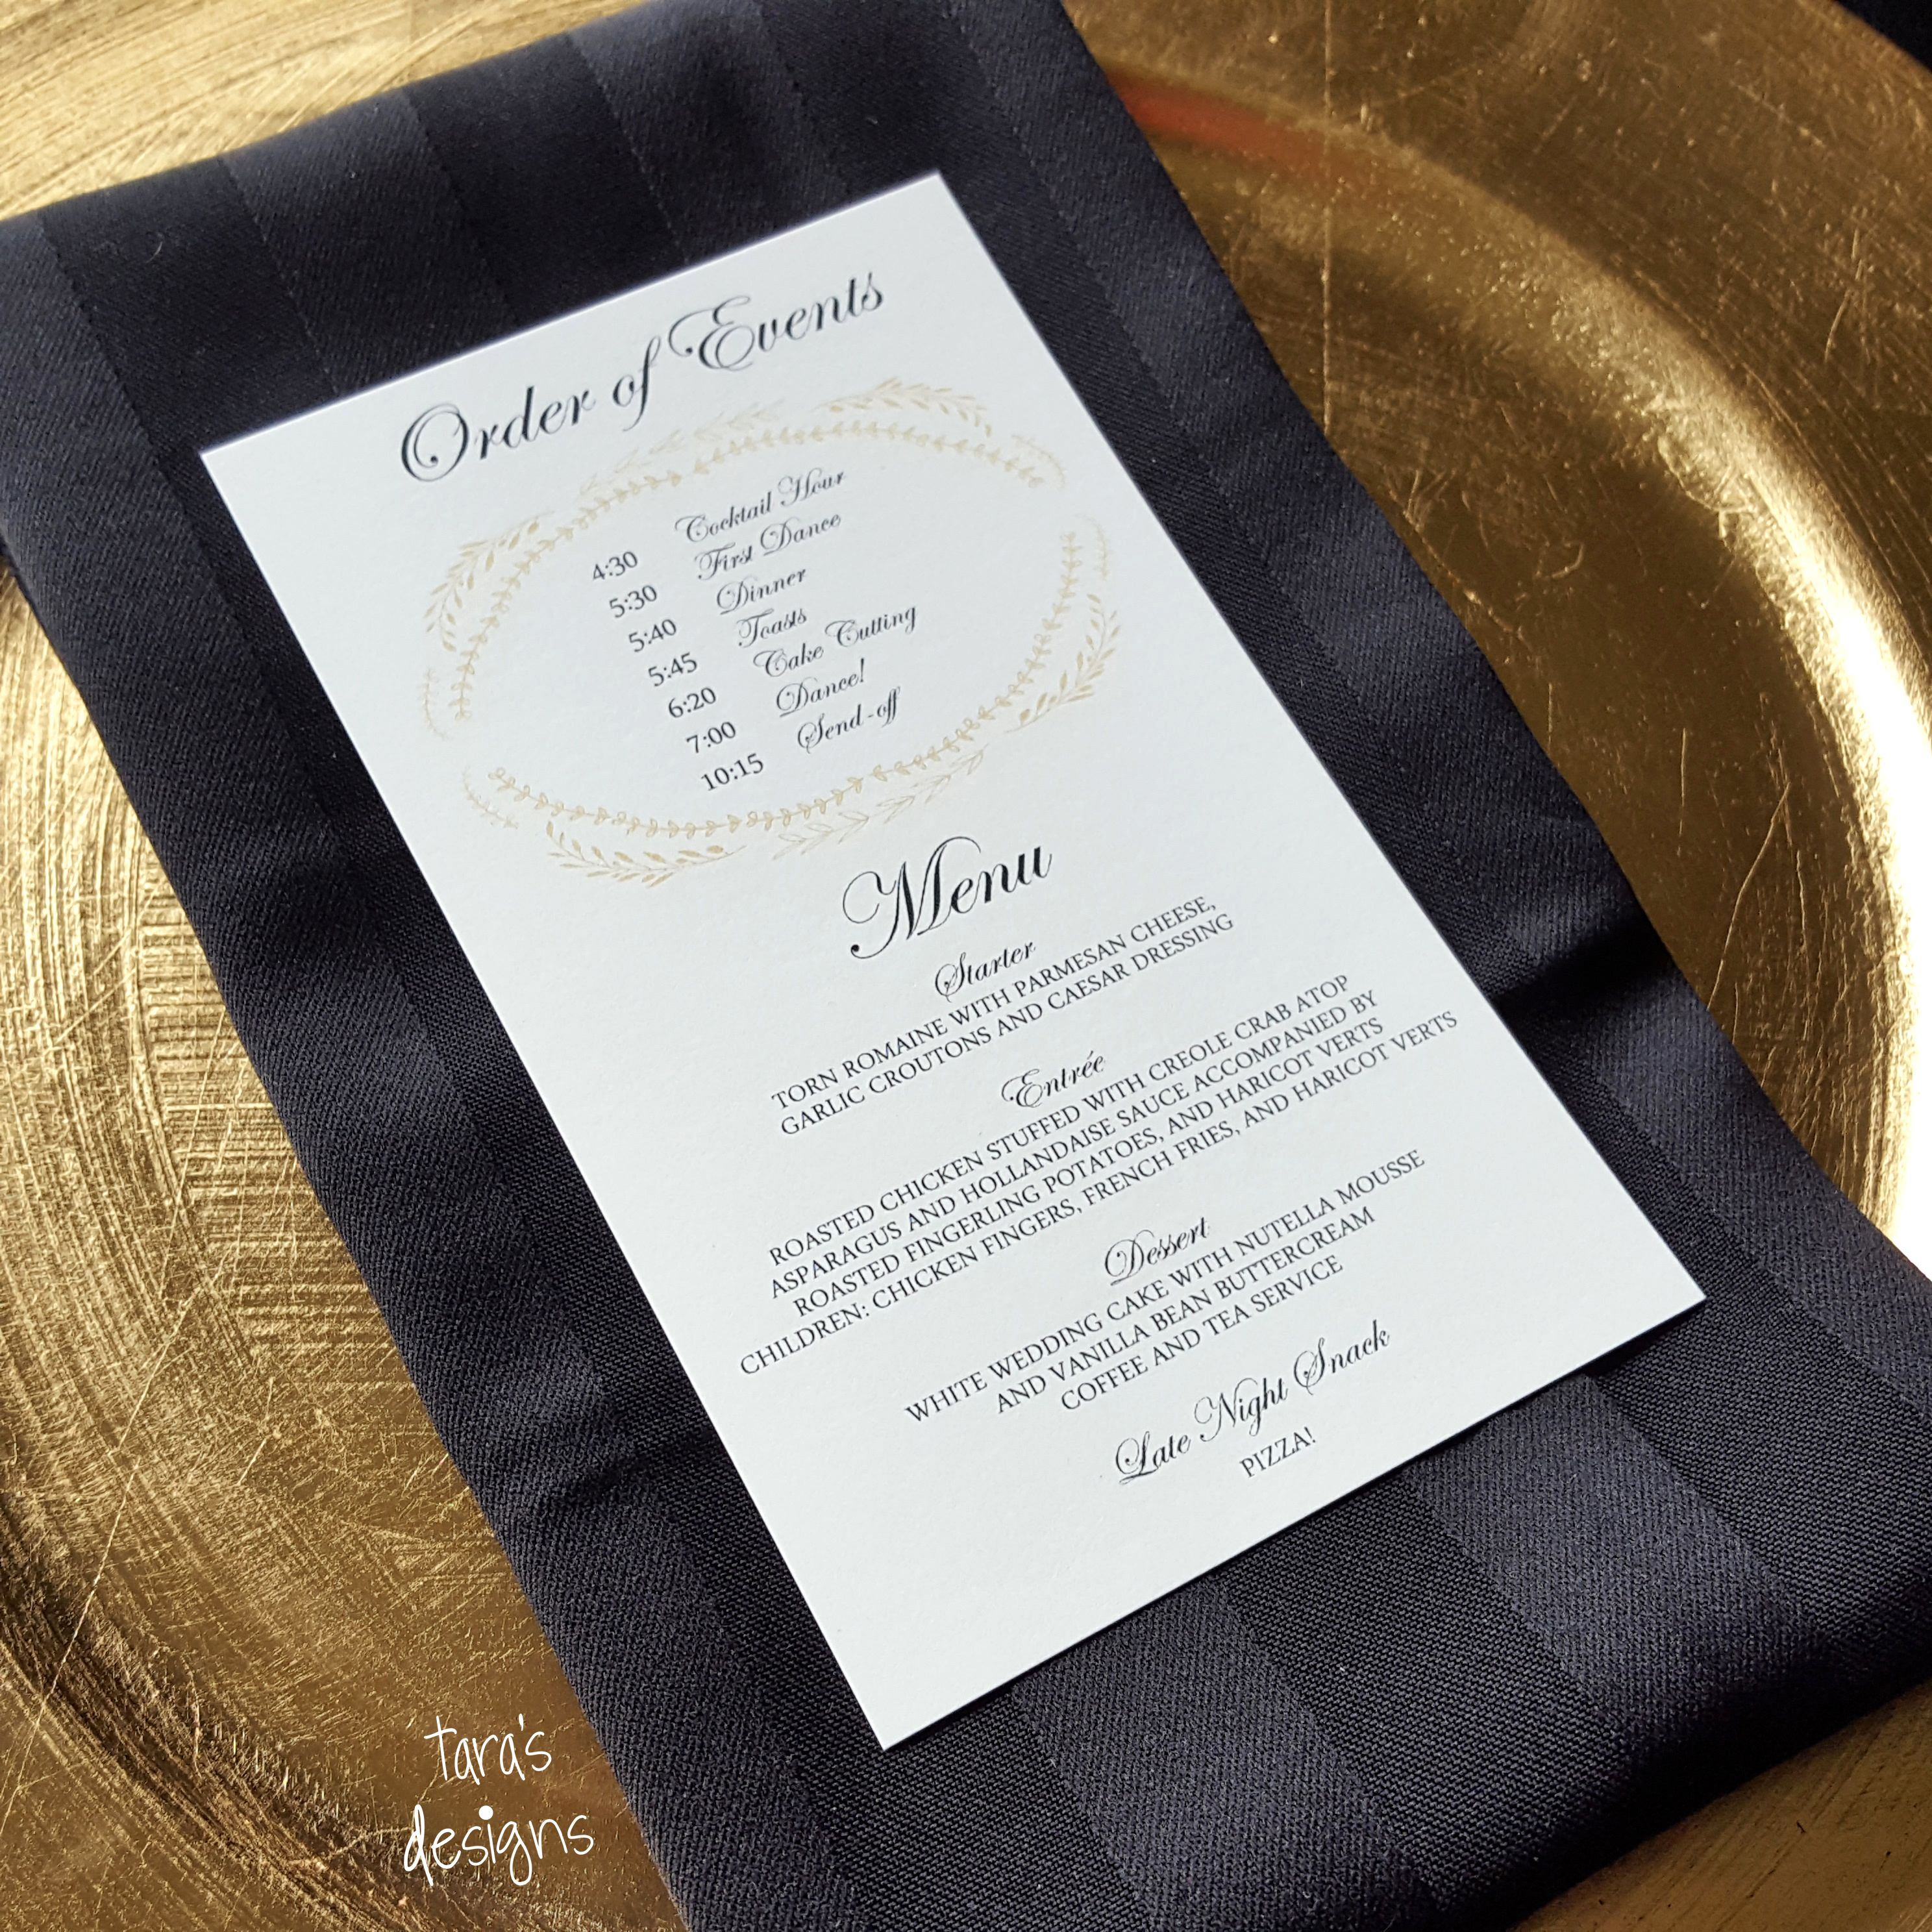 diy wedding invitations kits south africa%0A wedding reception order of events and menu card black and gold  floral  wreath